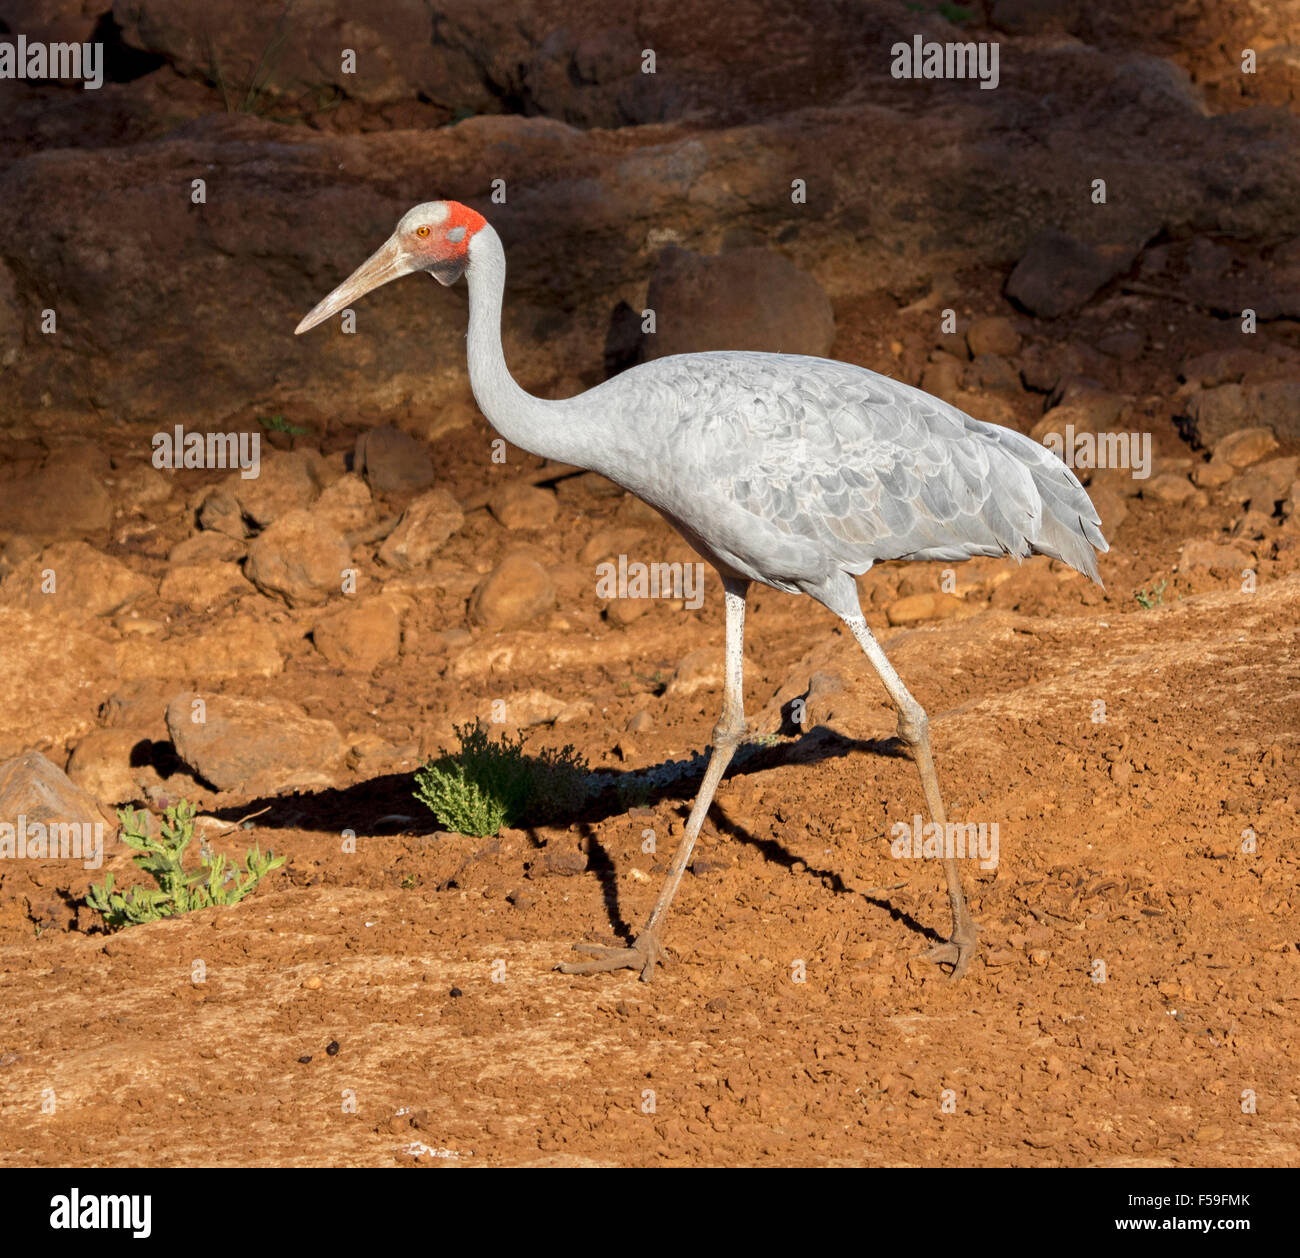 Brolga, Australian crane, Grus rubicunda, large elegant grey bird walking on dry red soil of bed of river in outback - Stock Image